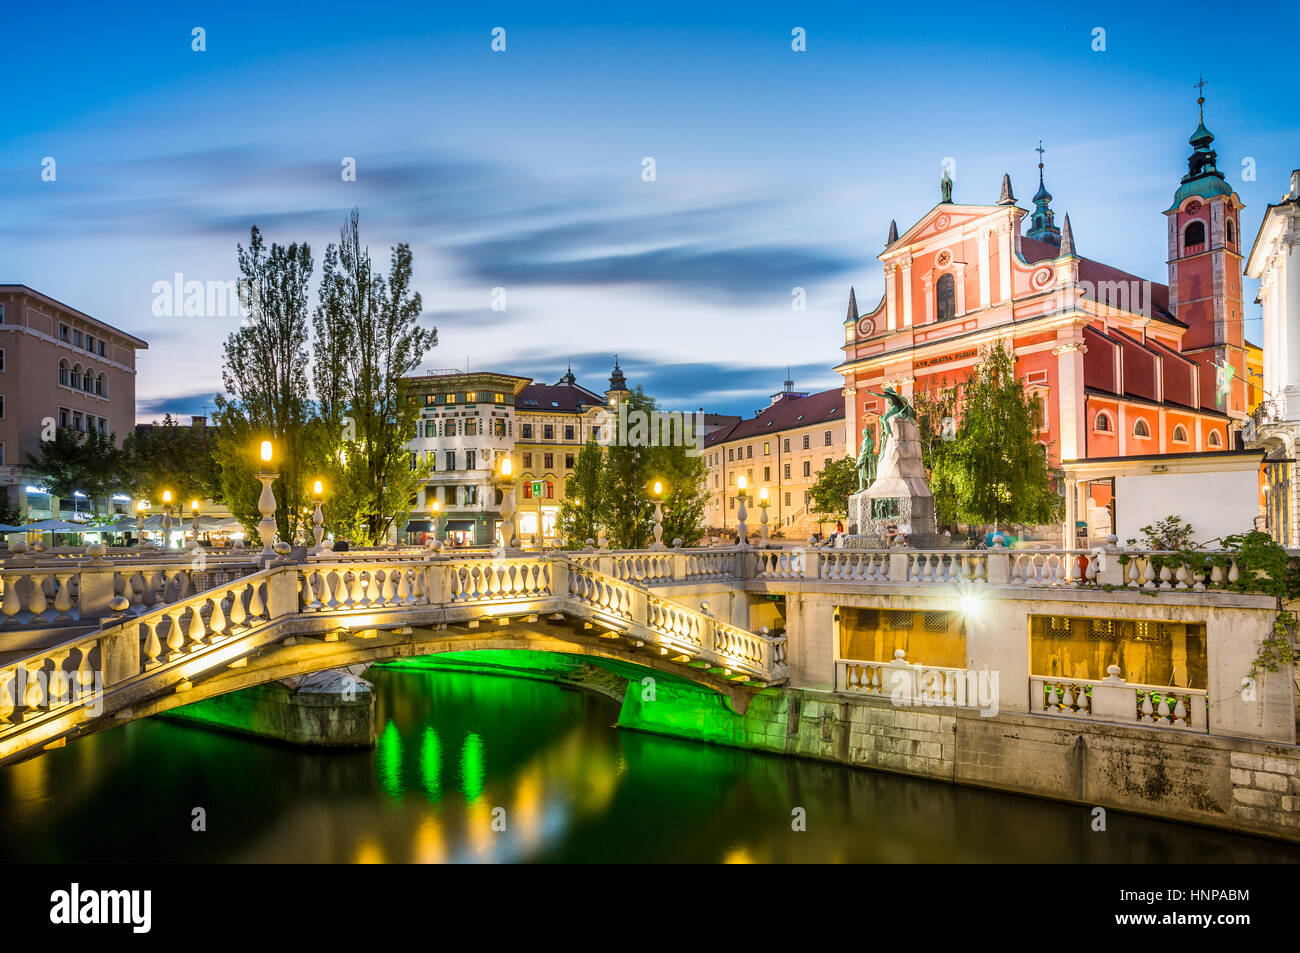 Tromostovje in the city center, Ljubljana, Slovenia - Stock Image